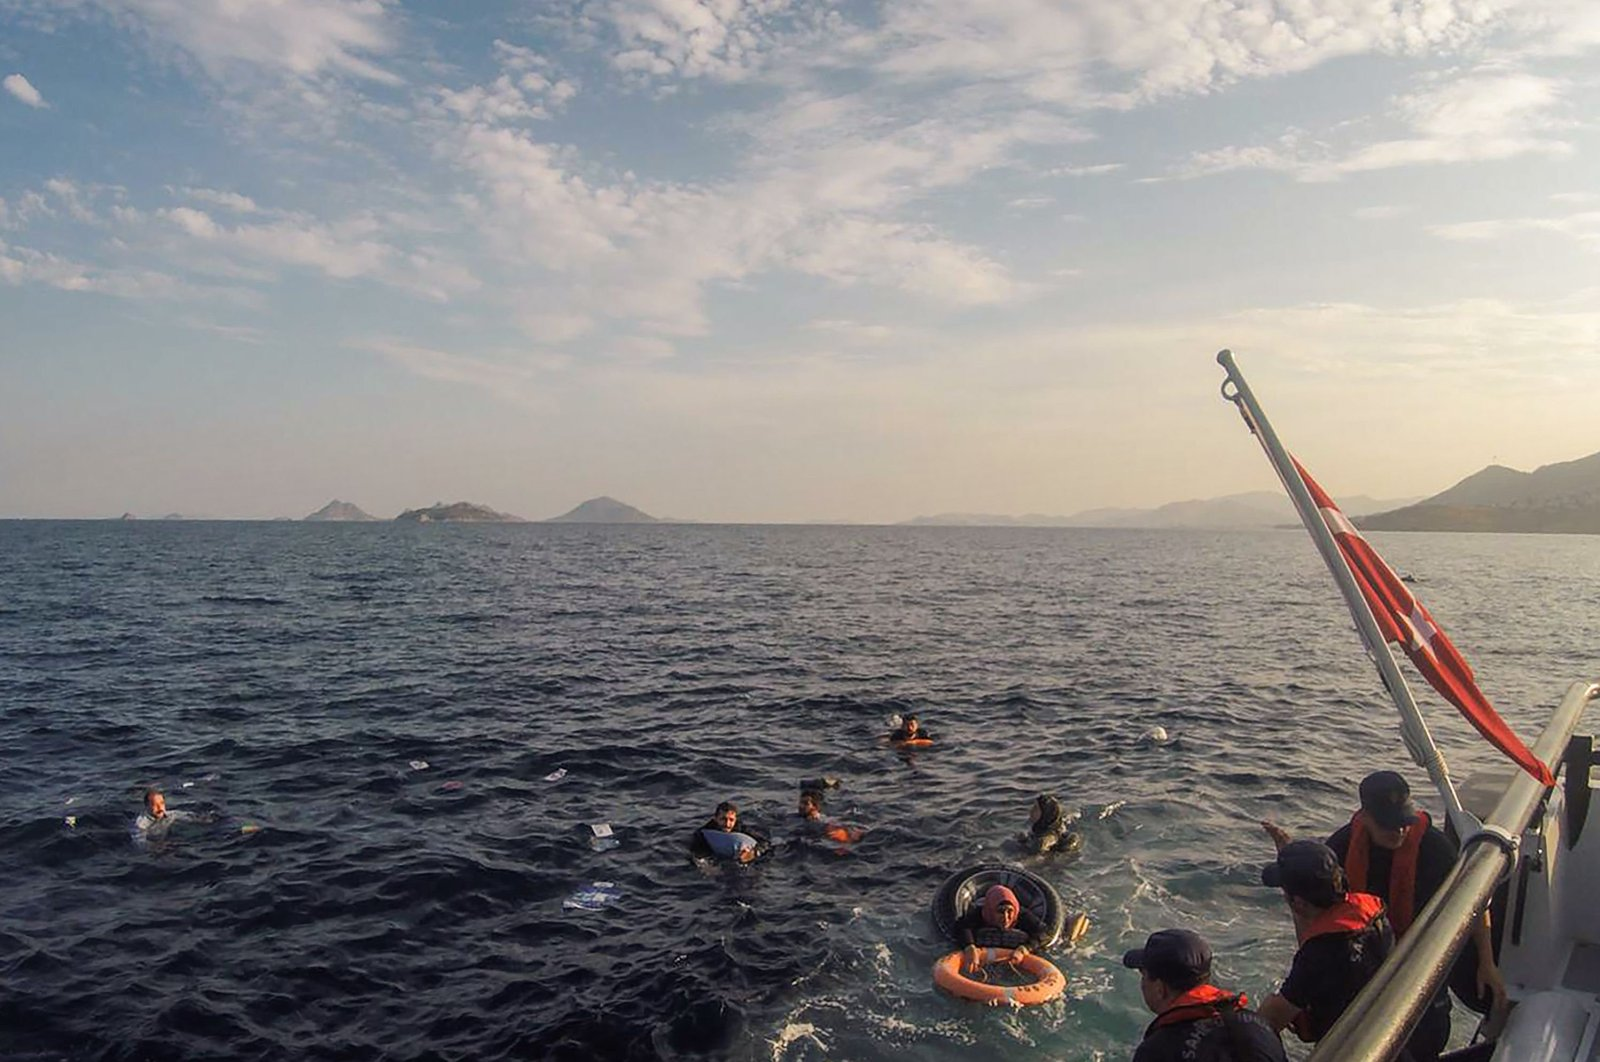 This handout picture released and taken on June 17, 2019, by the Turkish coastguard shows illegal migrants being rescued after their boat sank in the Aegean sea, off the coast of southwestern Turkey. (AFP File Photo)